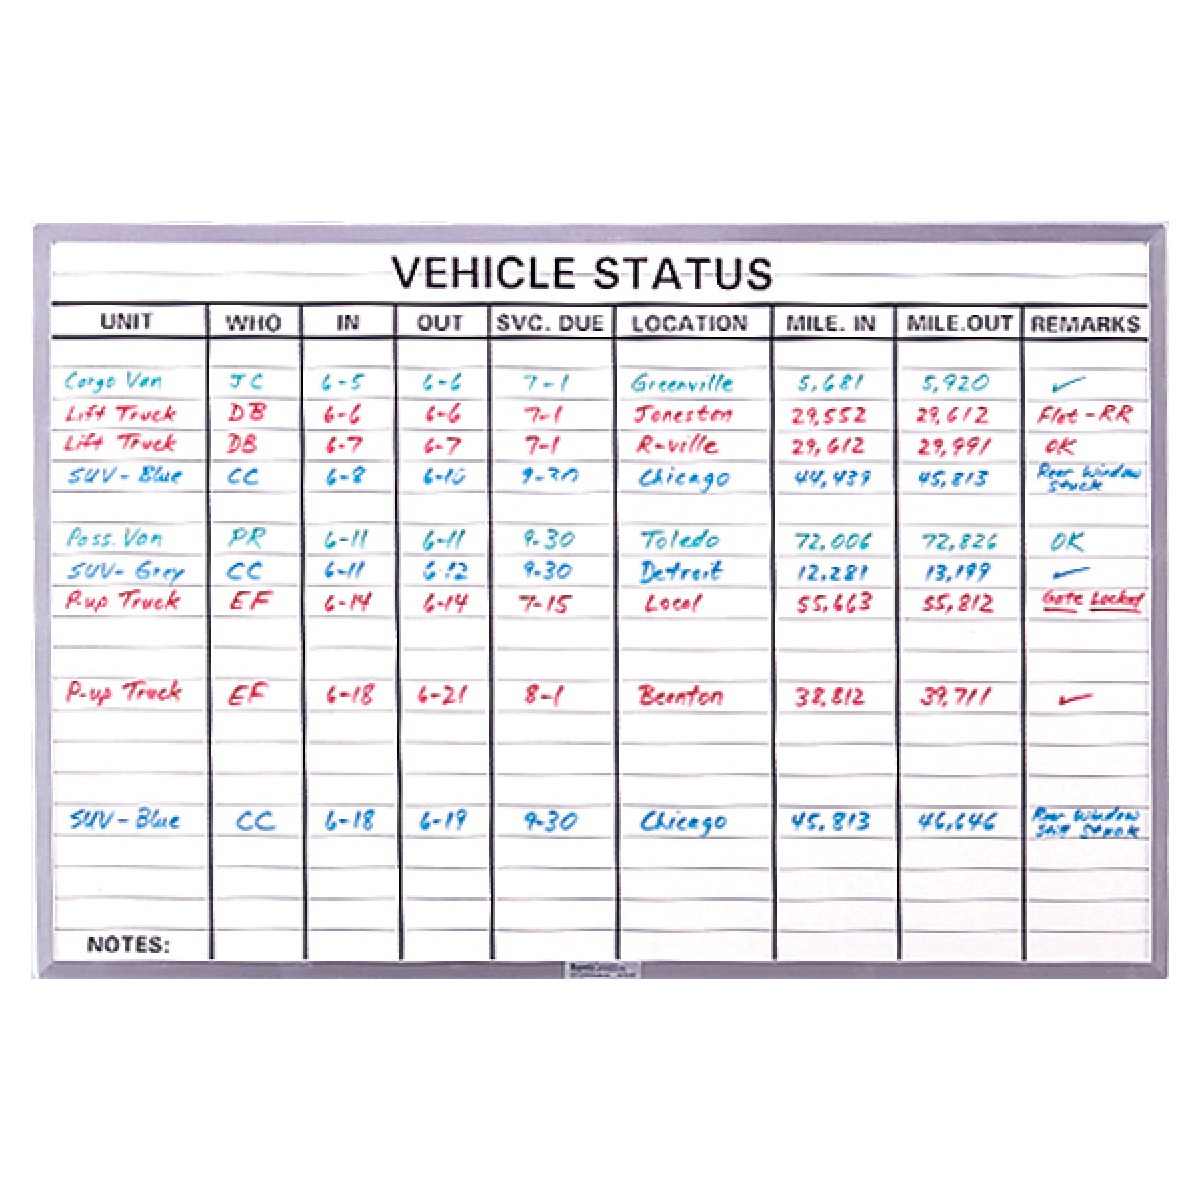 lined whiteboard for checking vehicle status